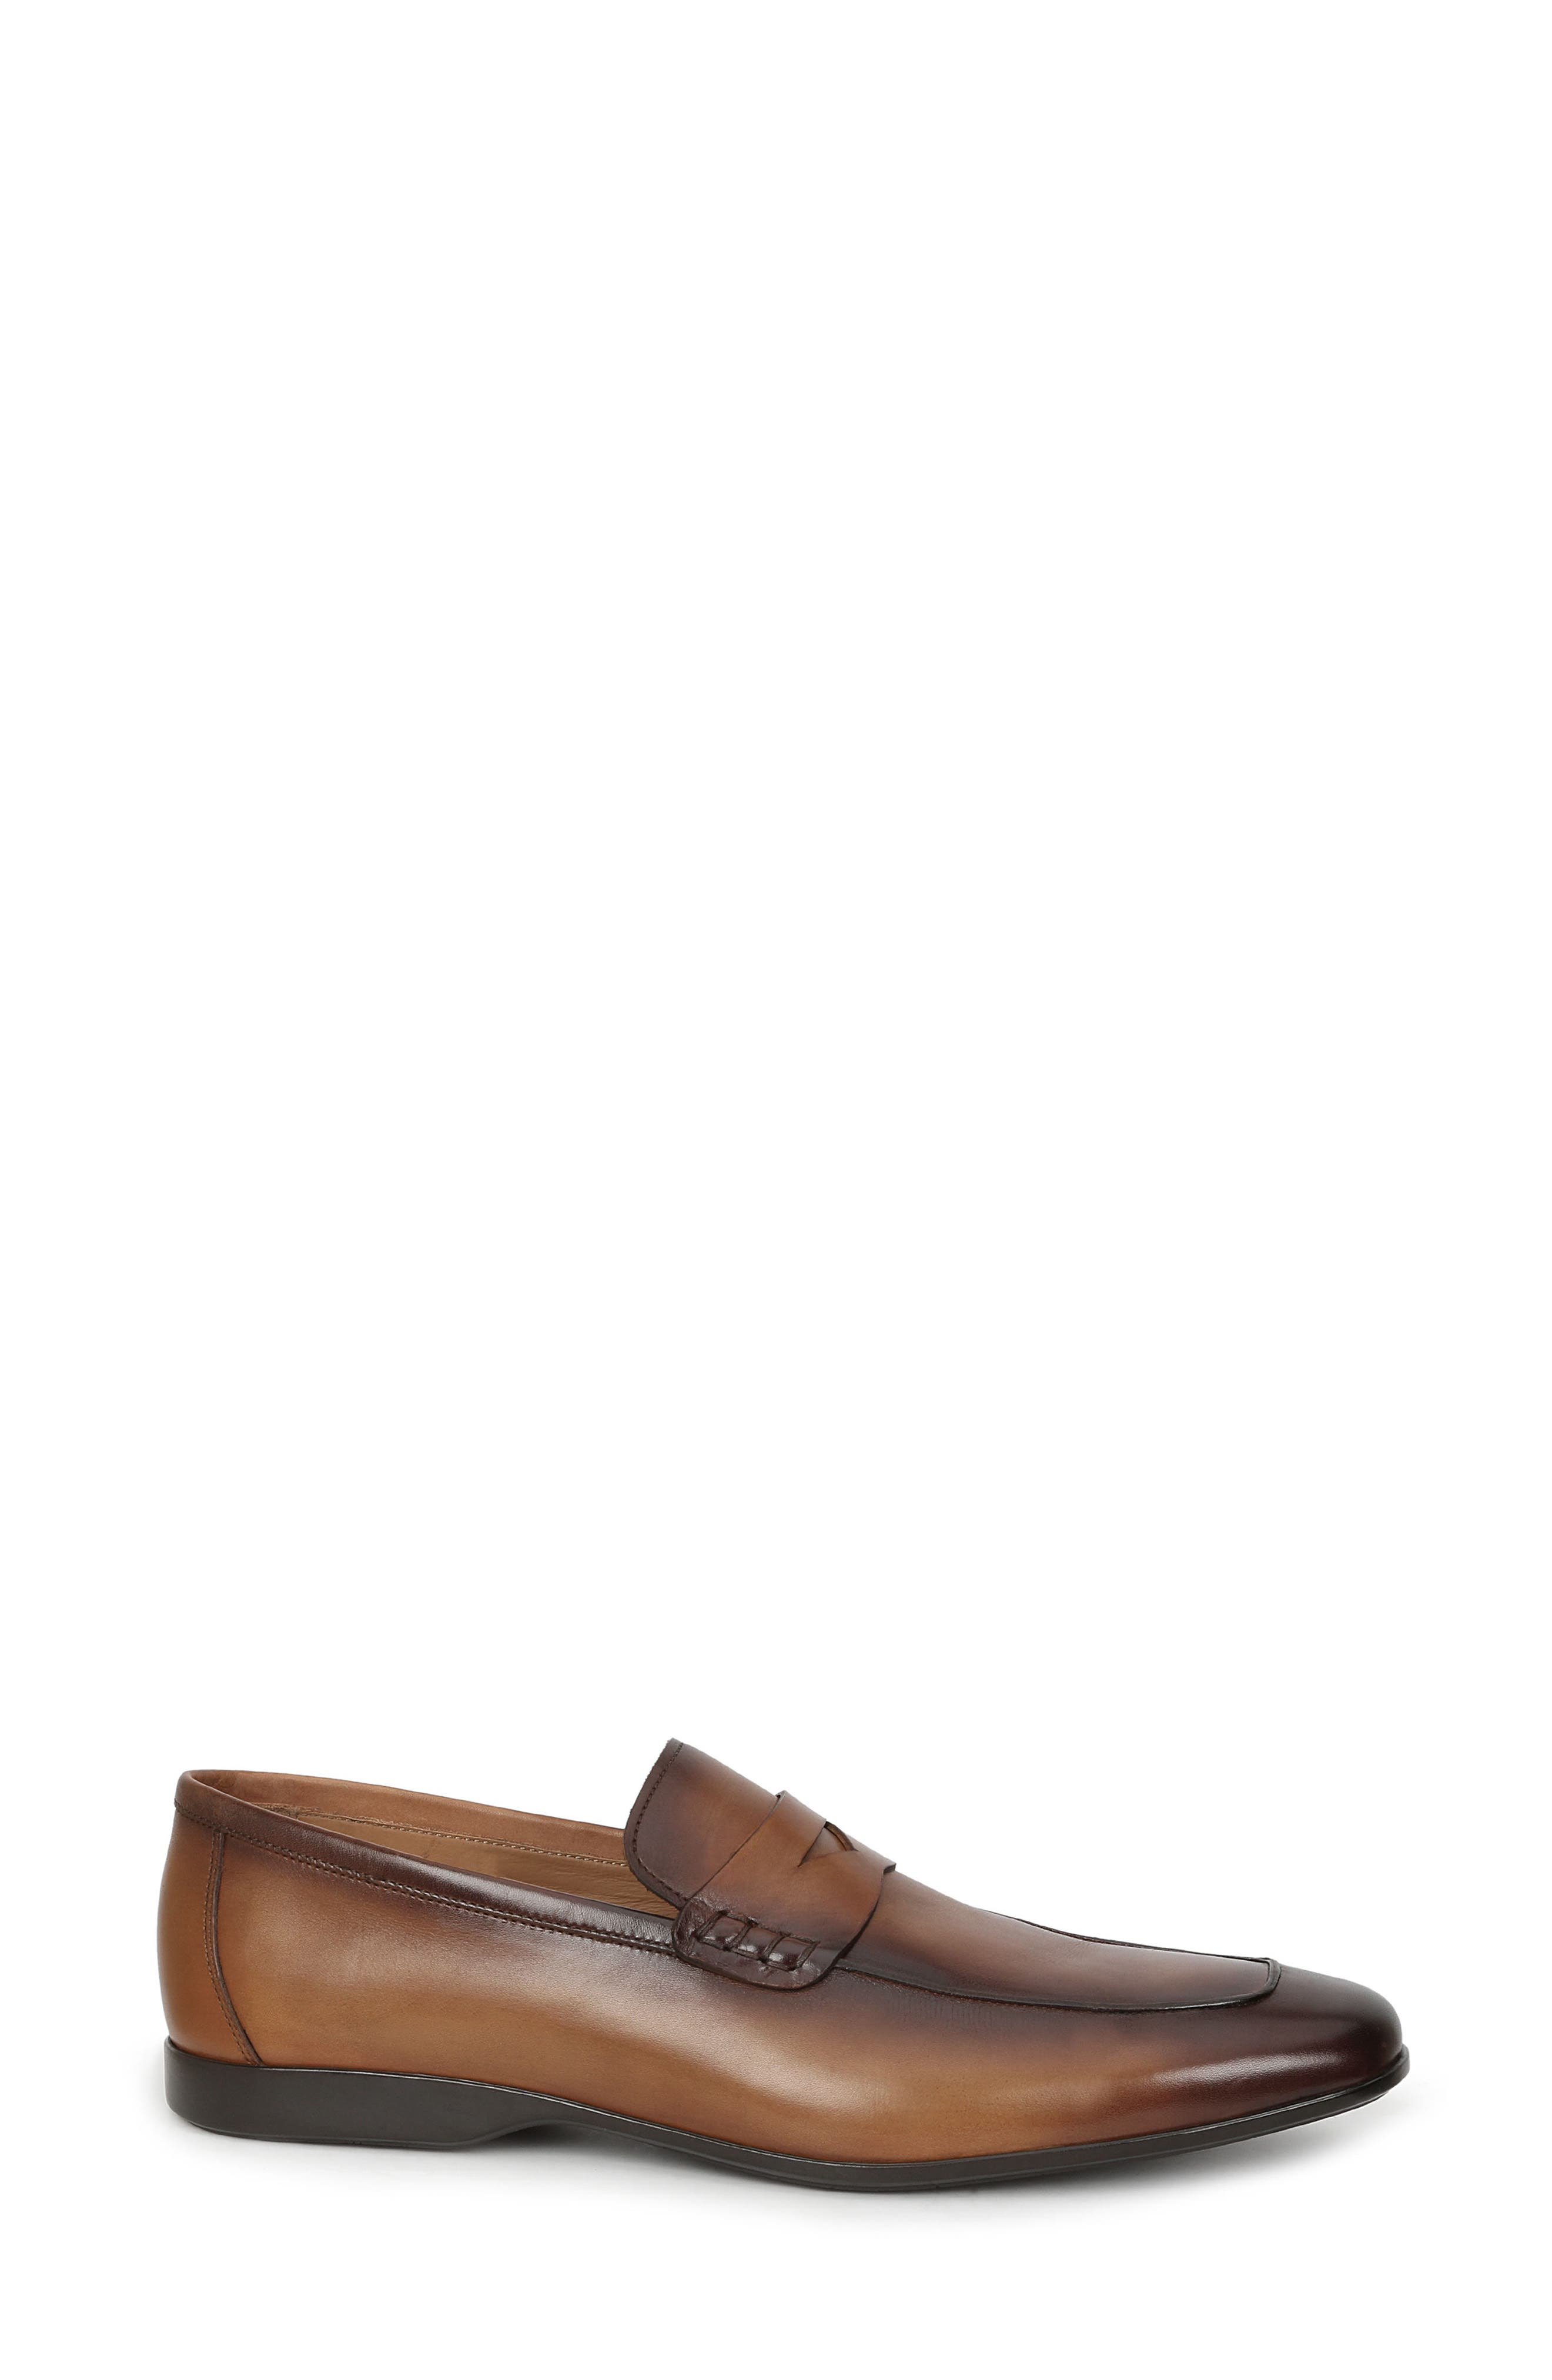 Margot Penny Loafer,                             Alternate thumbnail 3, color,                             Cognac